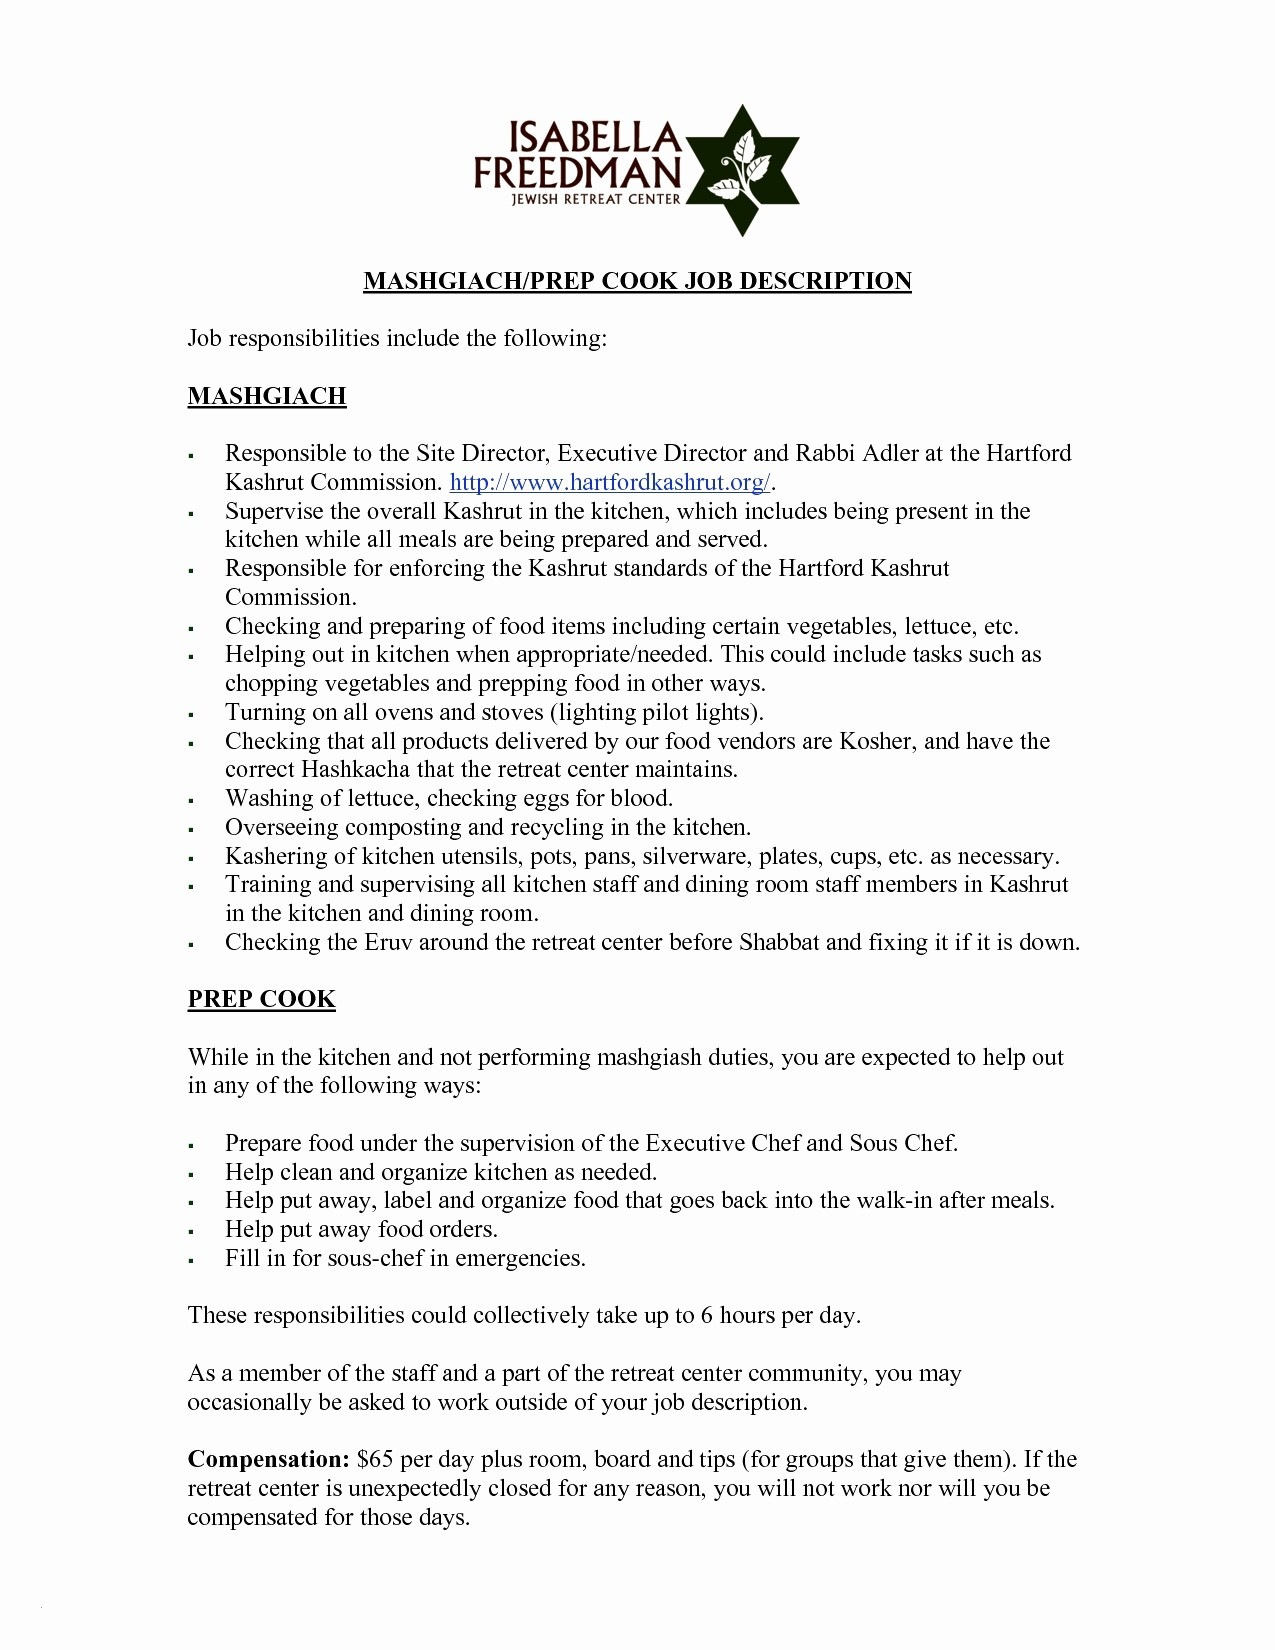 Admin assistant Job Description Resume - Administrative assistant Template Resume Unique New Example Resume